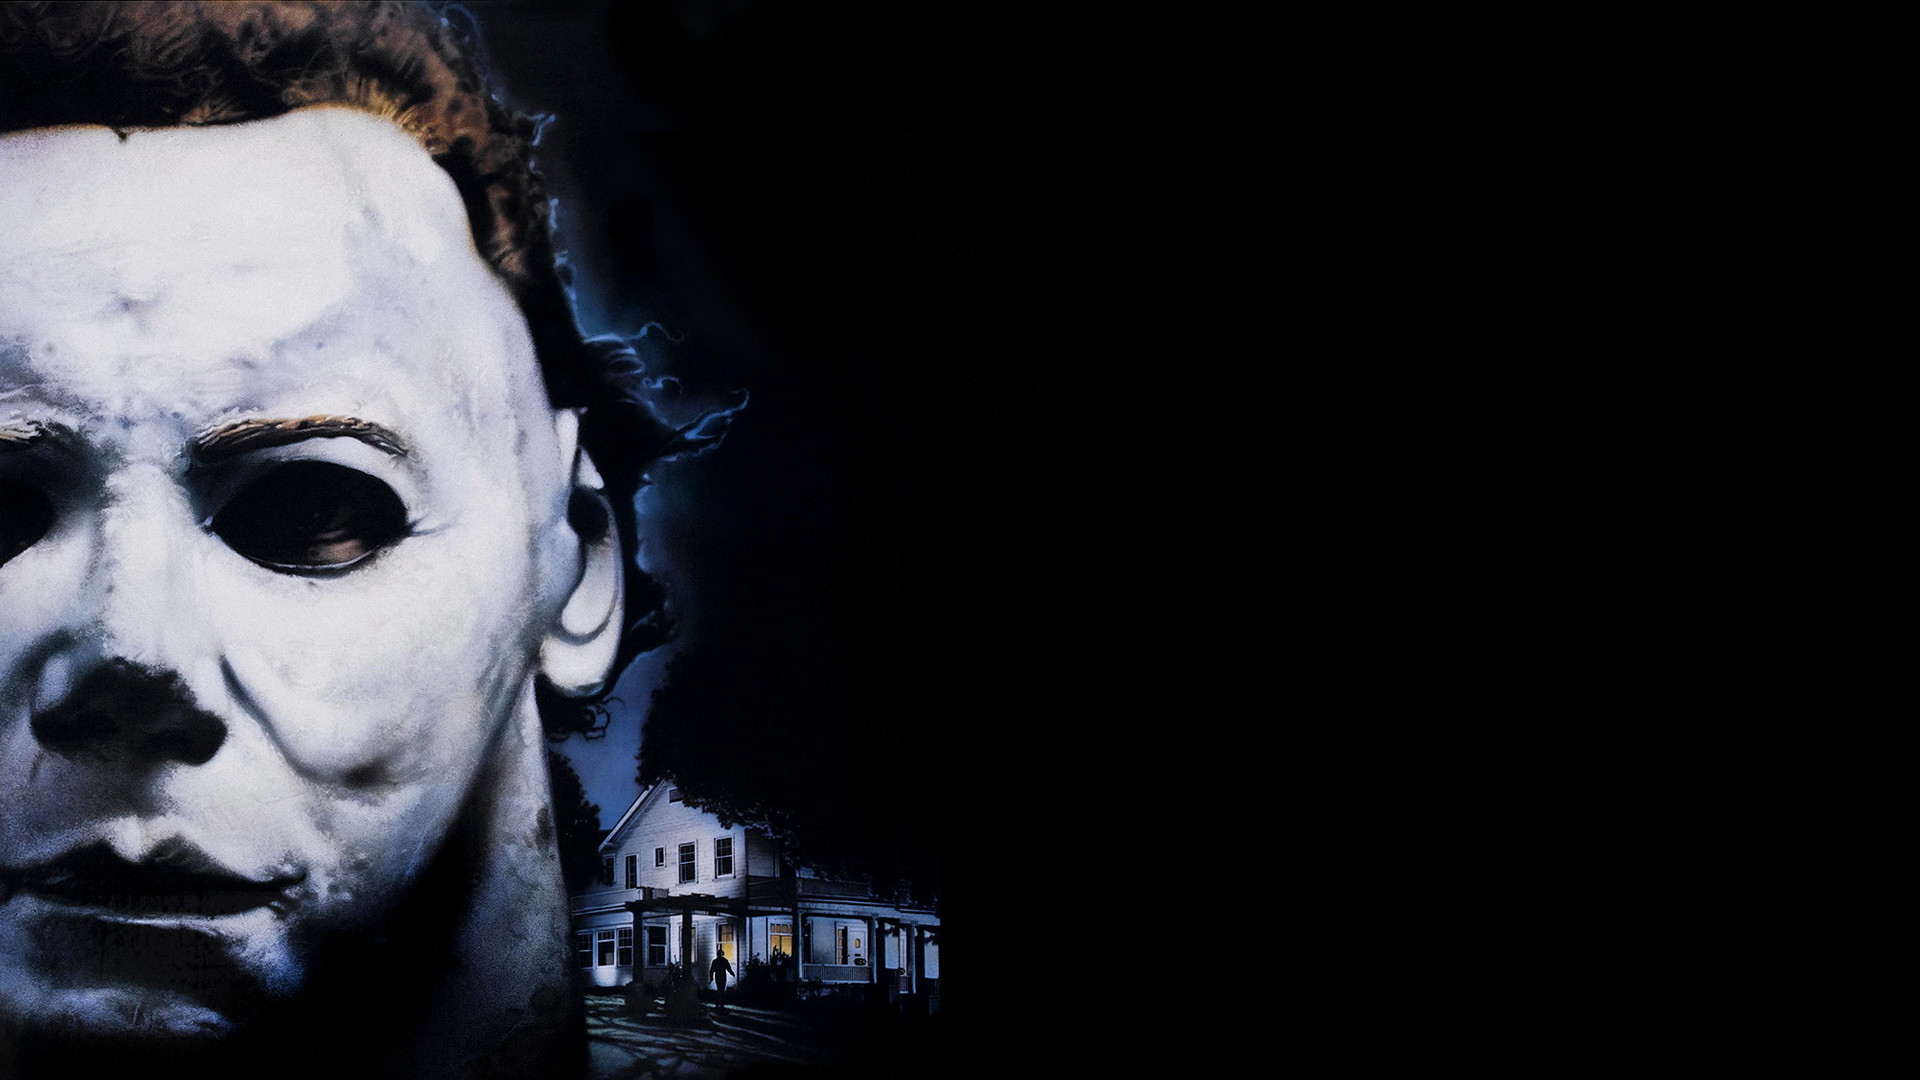 1920x1080 Movie - Halloween 4: The Return of Michael Myers Wallpaper